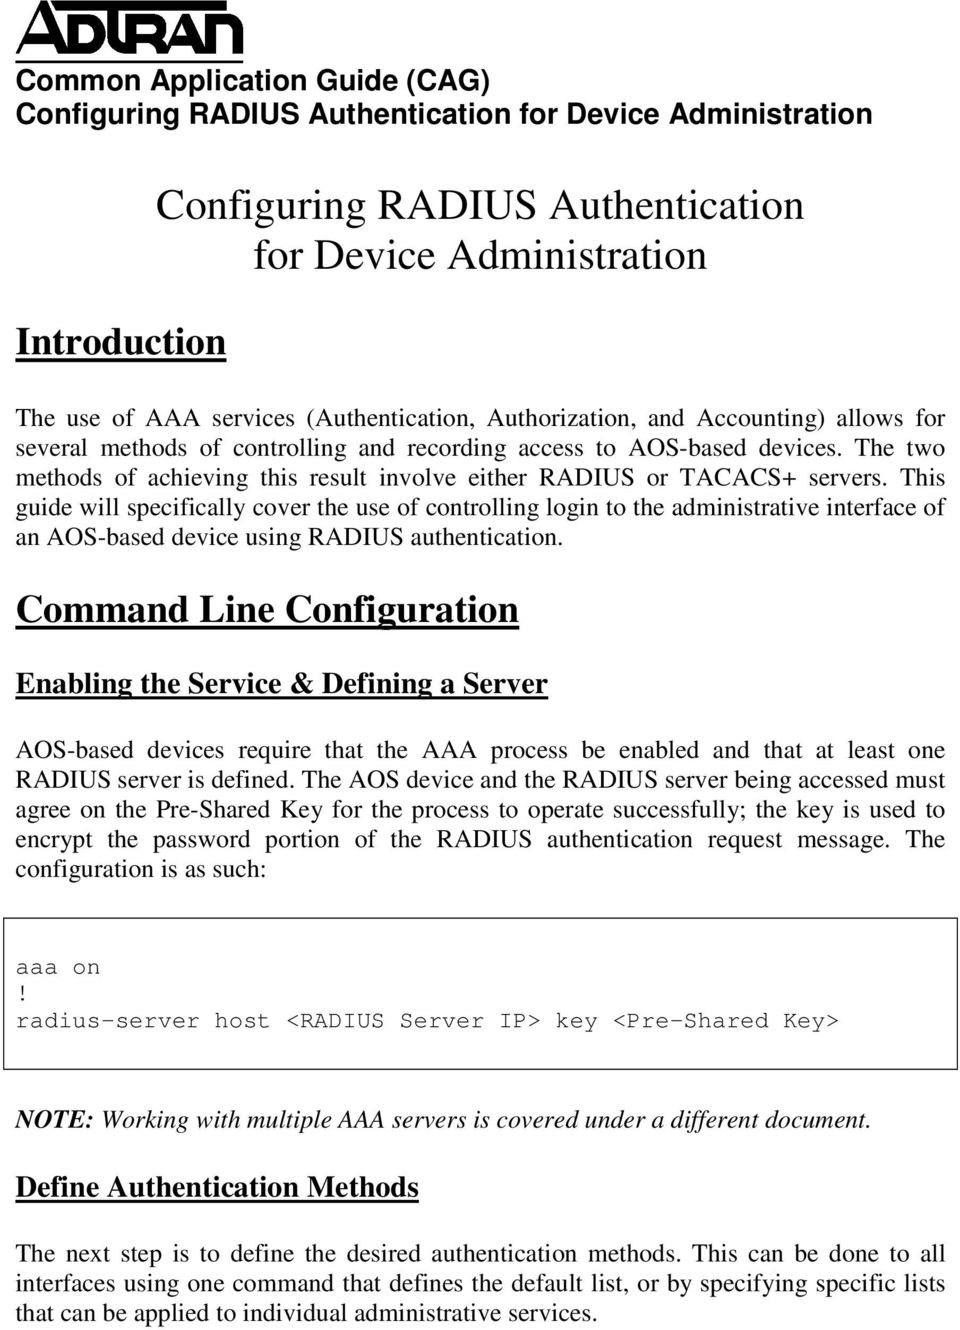 Configuring RADIUS Authentication for Device Administration